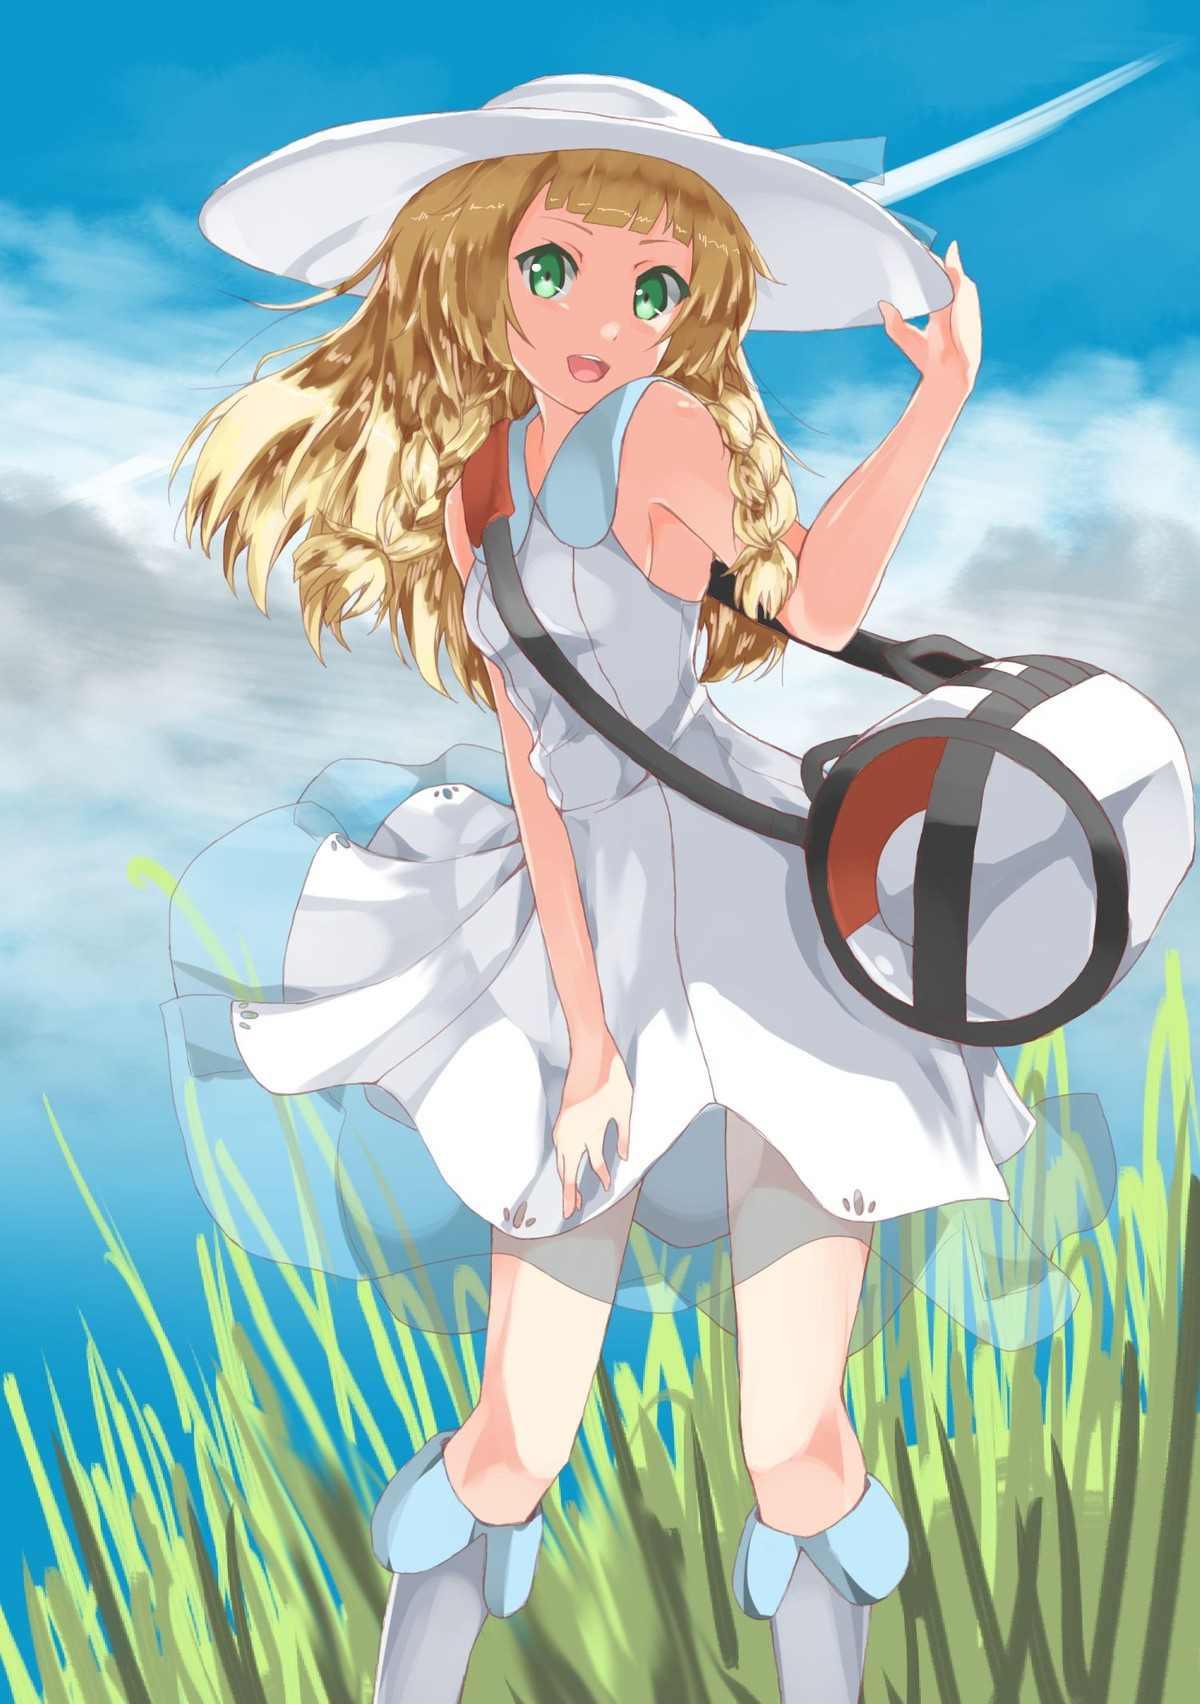 lillie_(pokemon)084